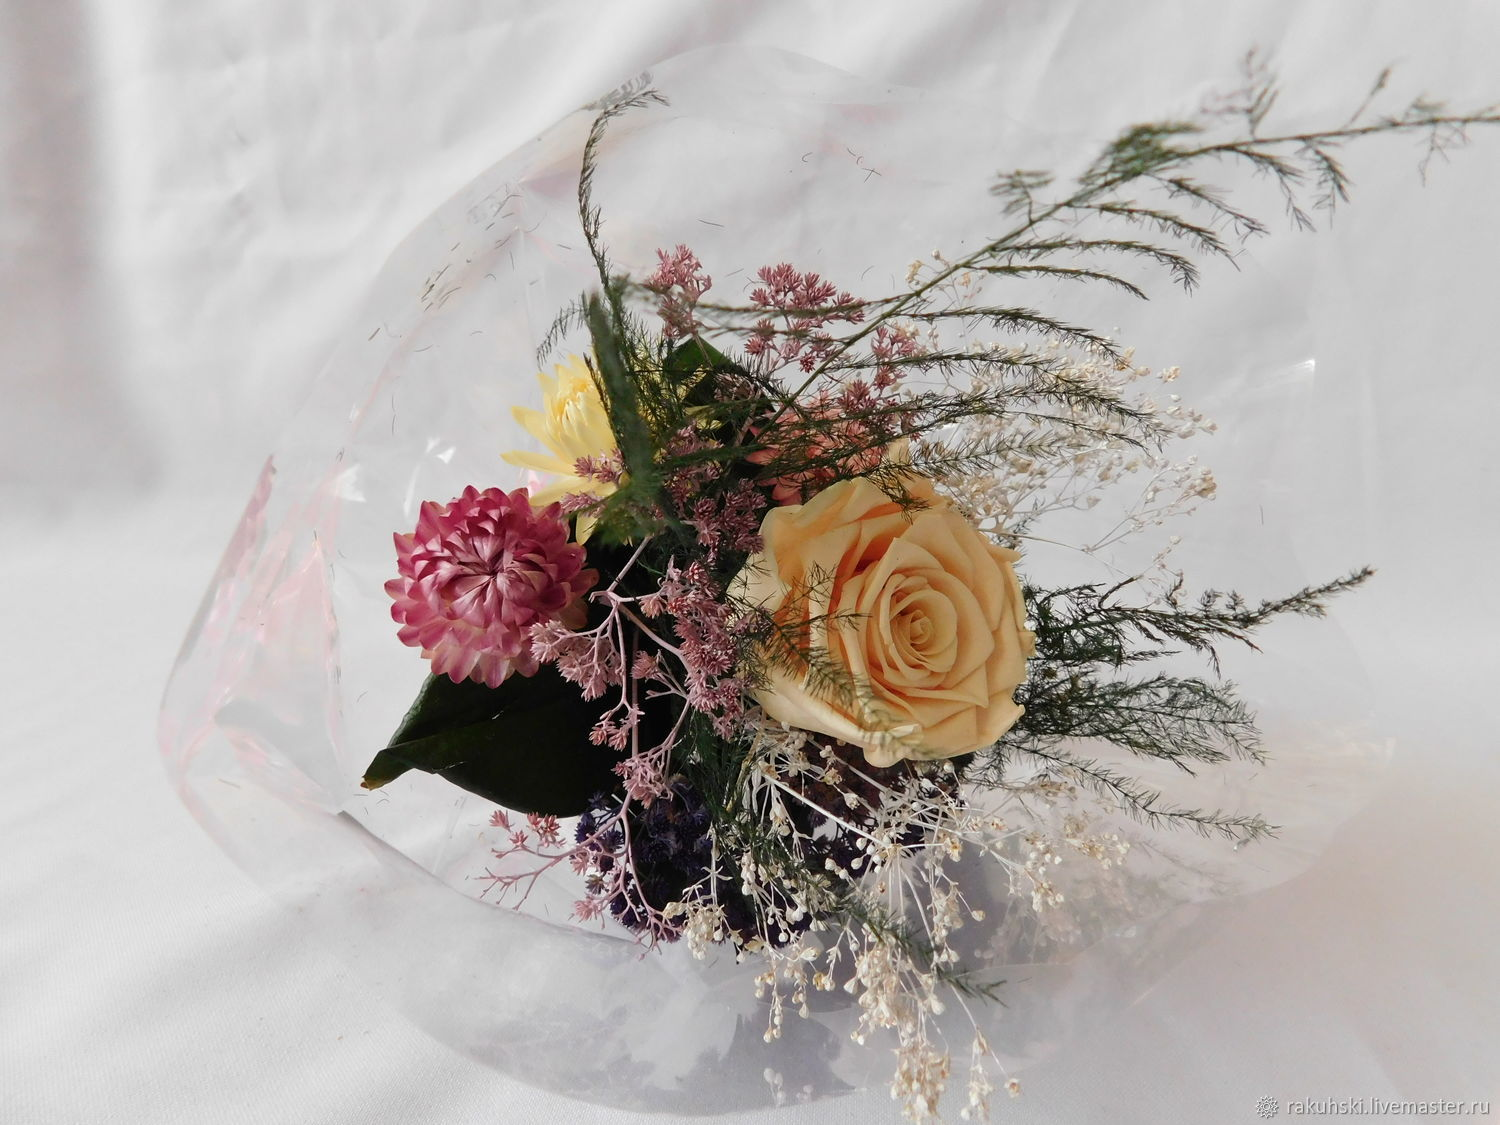 Bouquet of dried flowers rose 1 shop online on livemaster with buy bouquet of dried flowers rose 1 izmirmasajfo